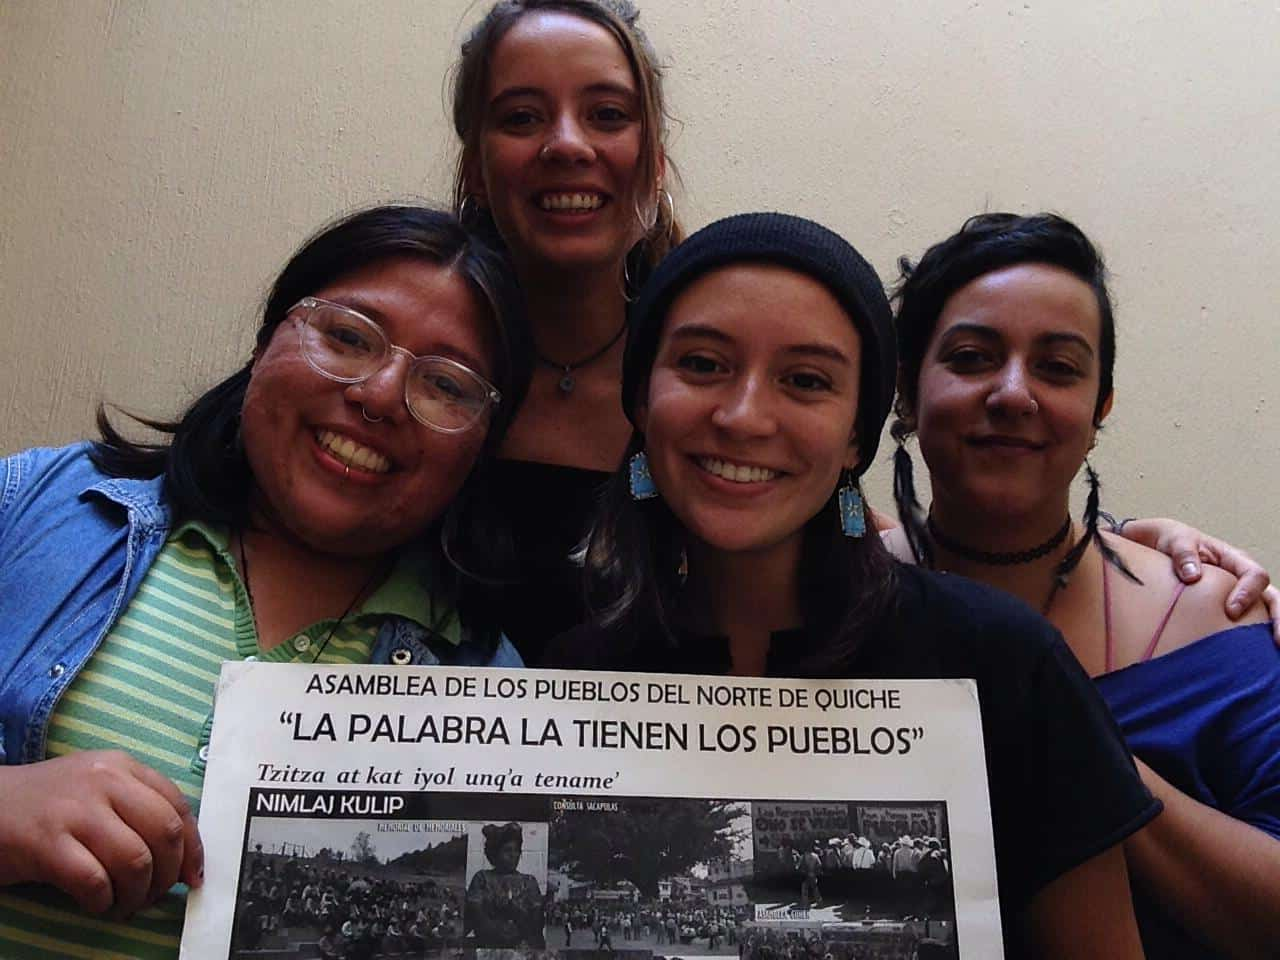 4 NISGUA accompaniers hold a sign that says